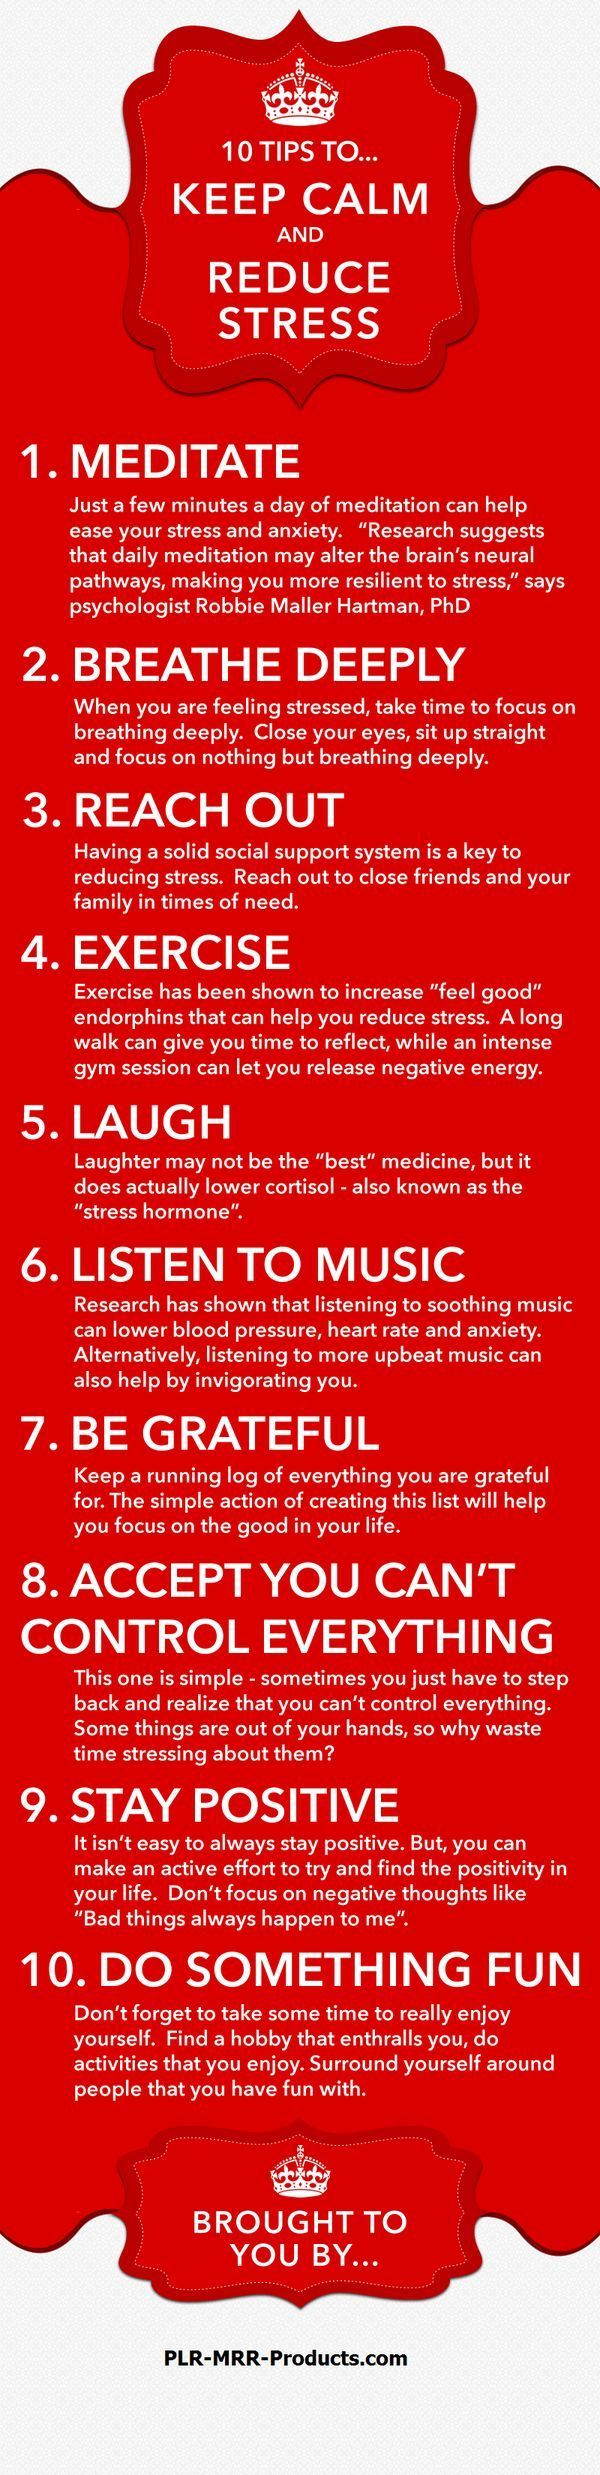 Tips for staying calm.